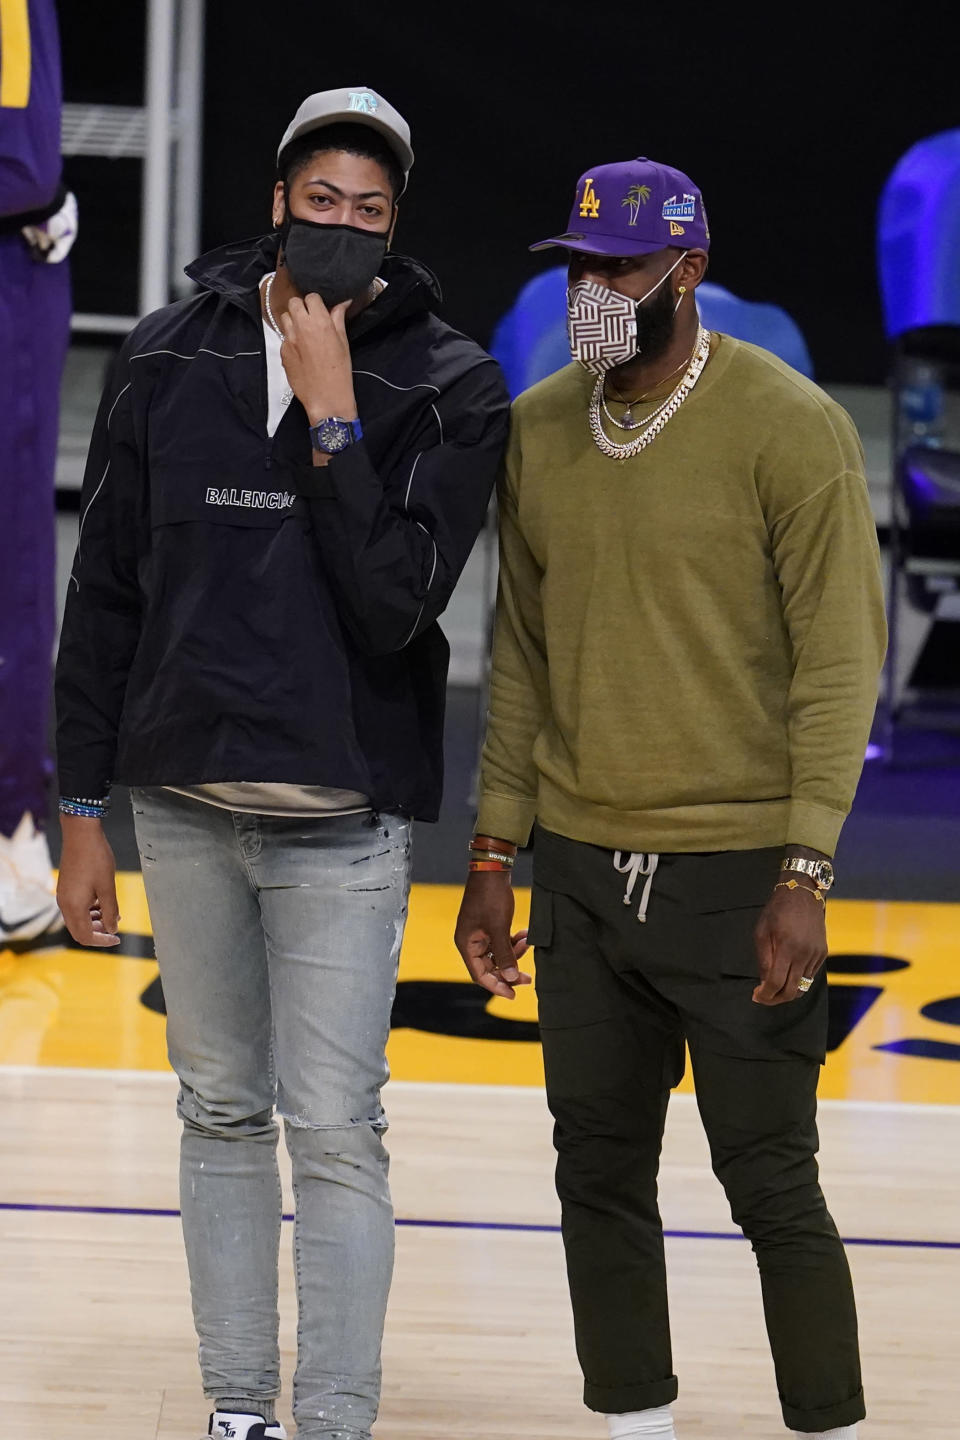 Los Angeles Lakers injured players Anthony Davis, left, and LeBron James talk on the court during a timeout during the first half of an NBA basketball game against the Utah Jazz Monday, April 19, 2021, in Los Angeles. (AP Photo/Marcio Jose Sanchez)